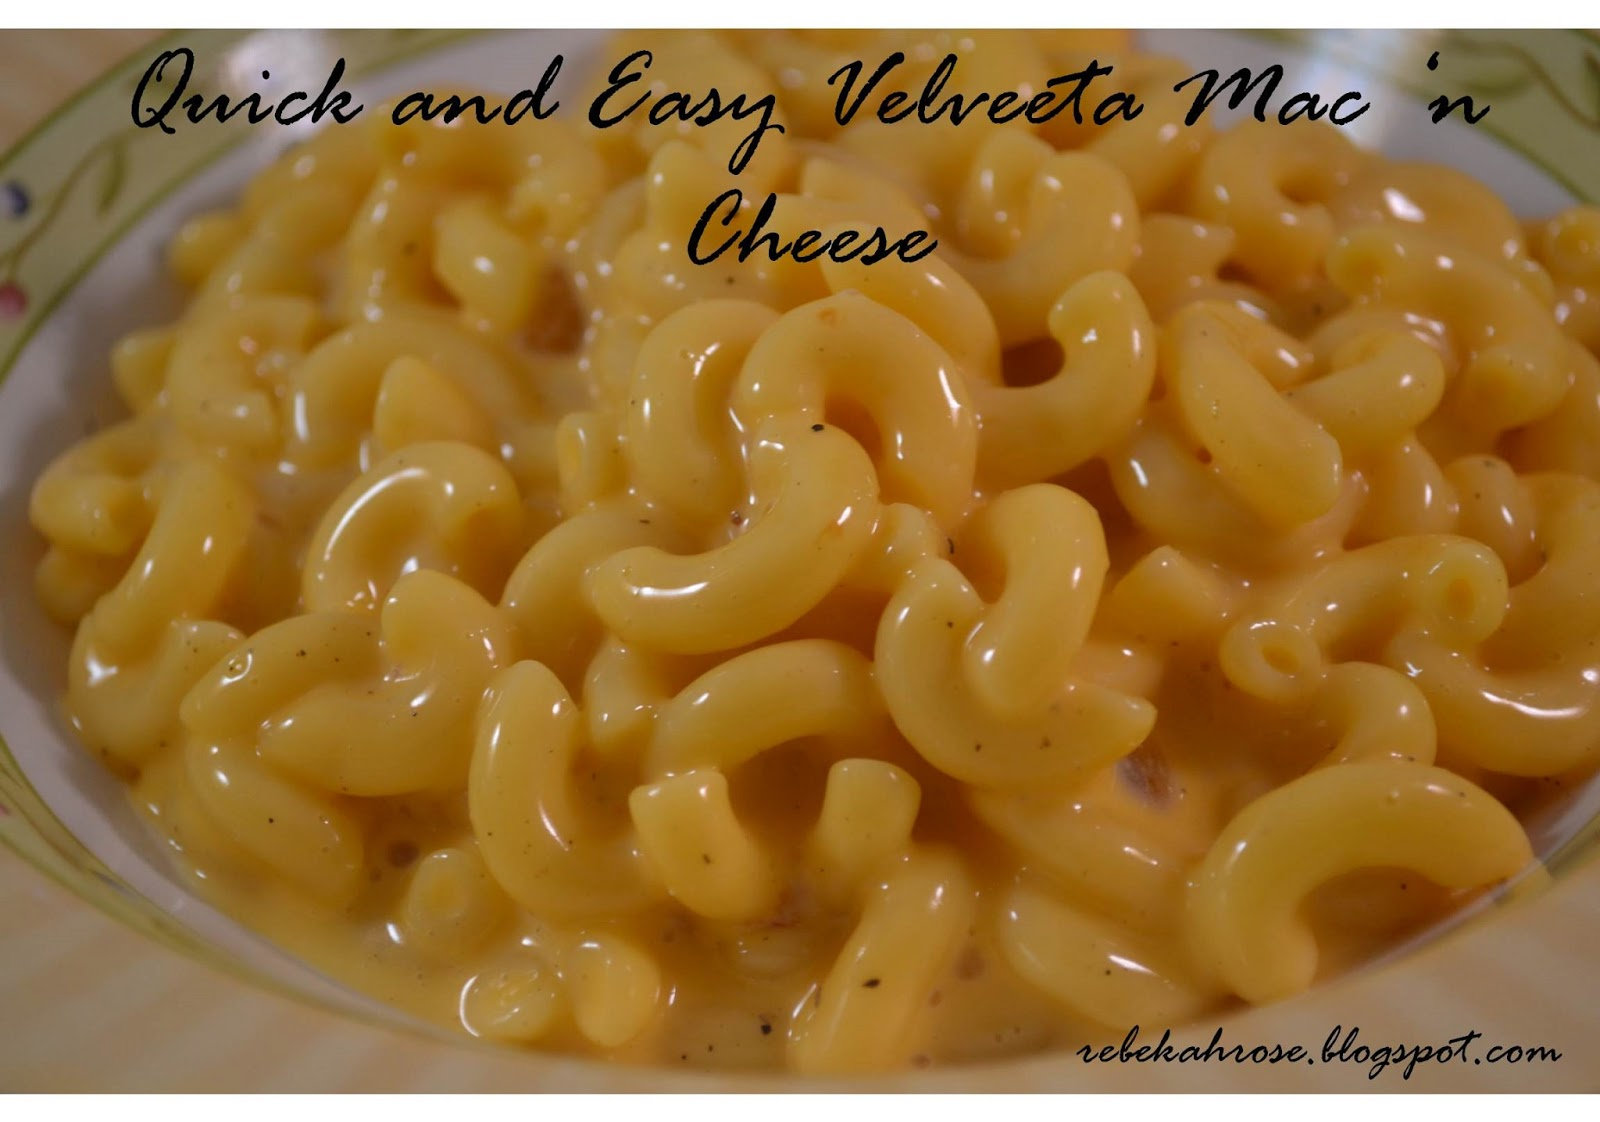 velveeta mac n cheese recipe